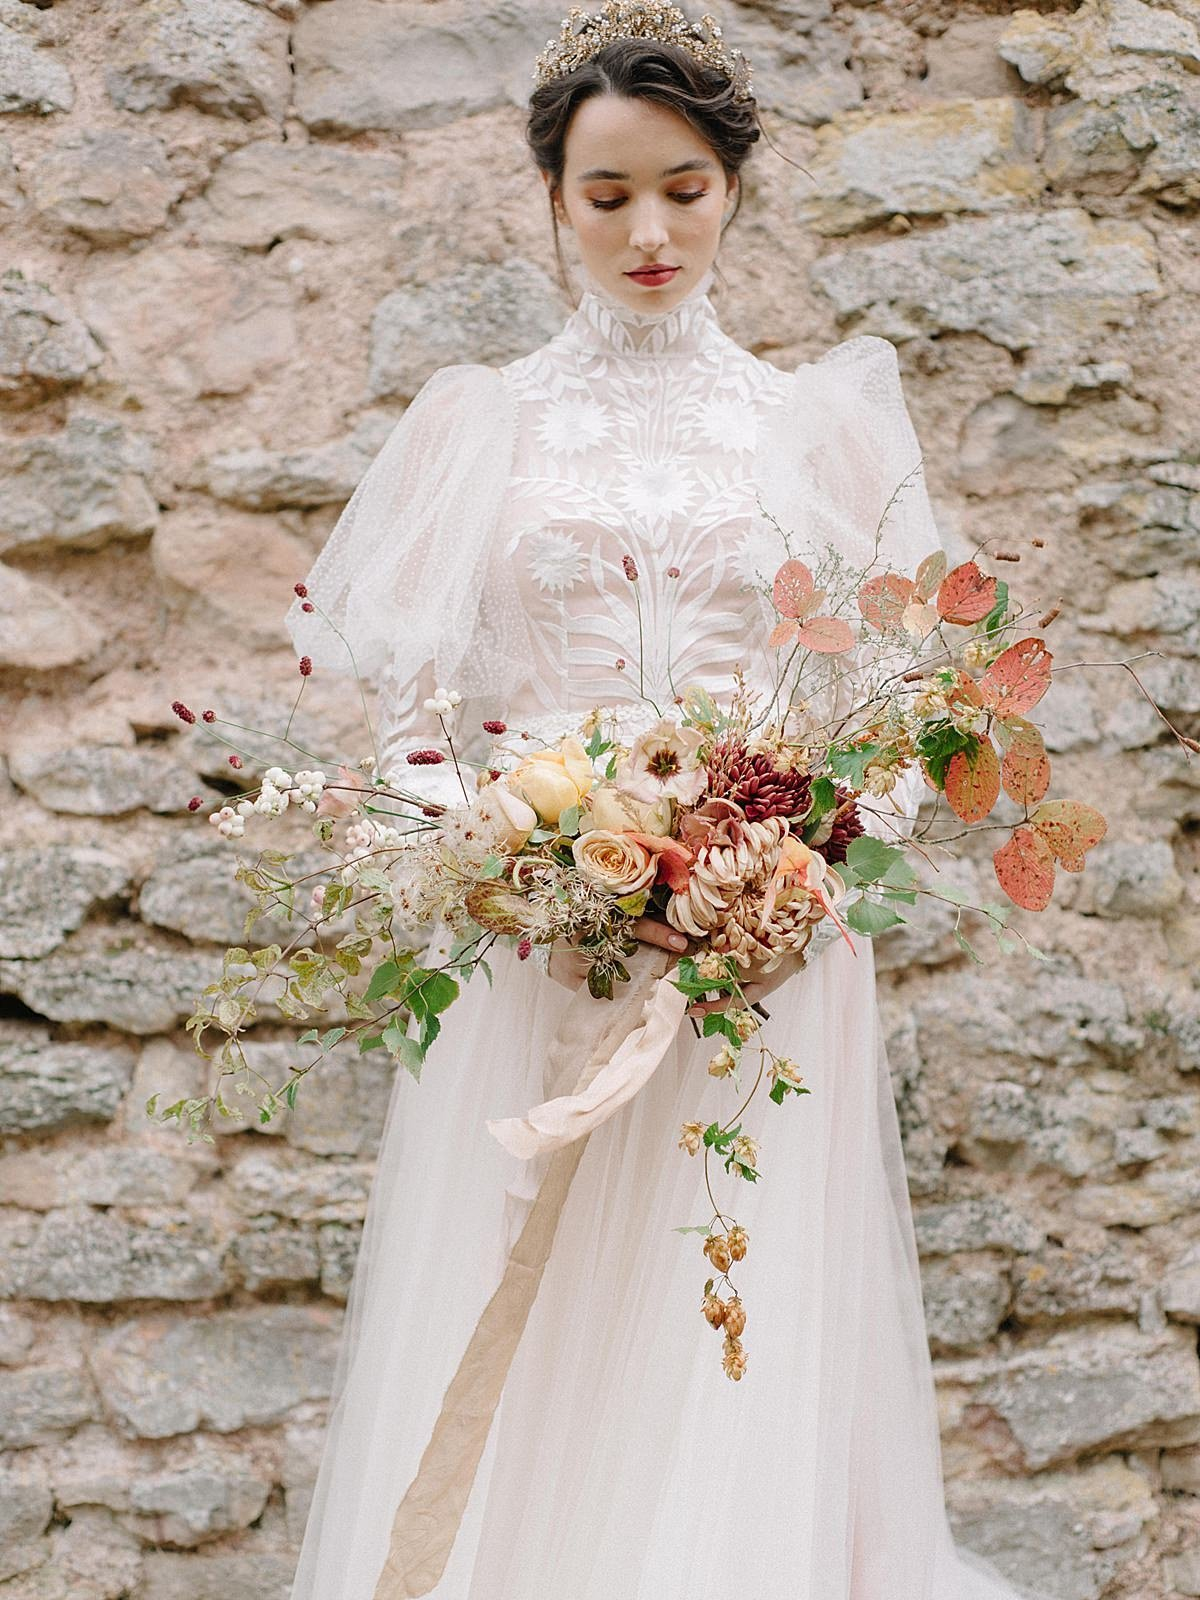 Helianthus-high-neck-puff-sleeve-wedding-dress-JoanneFlemingDesign-CelineChhuonPhoto (83)_WEB